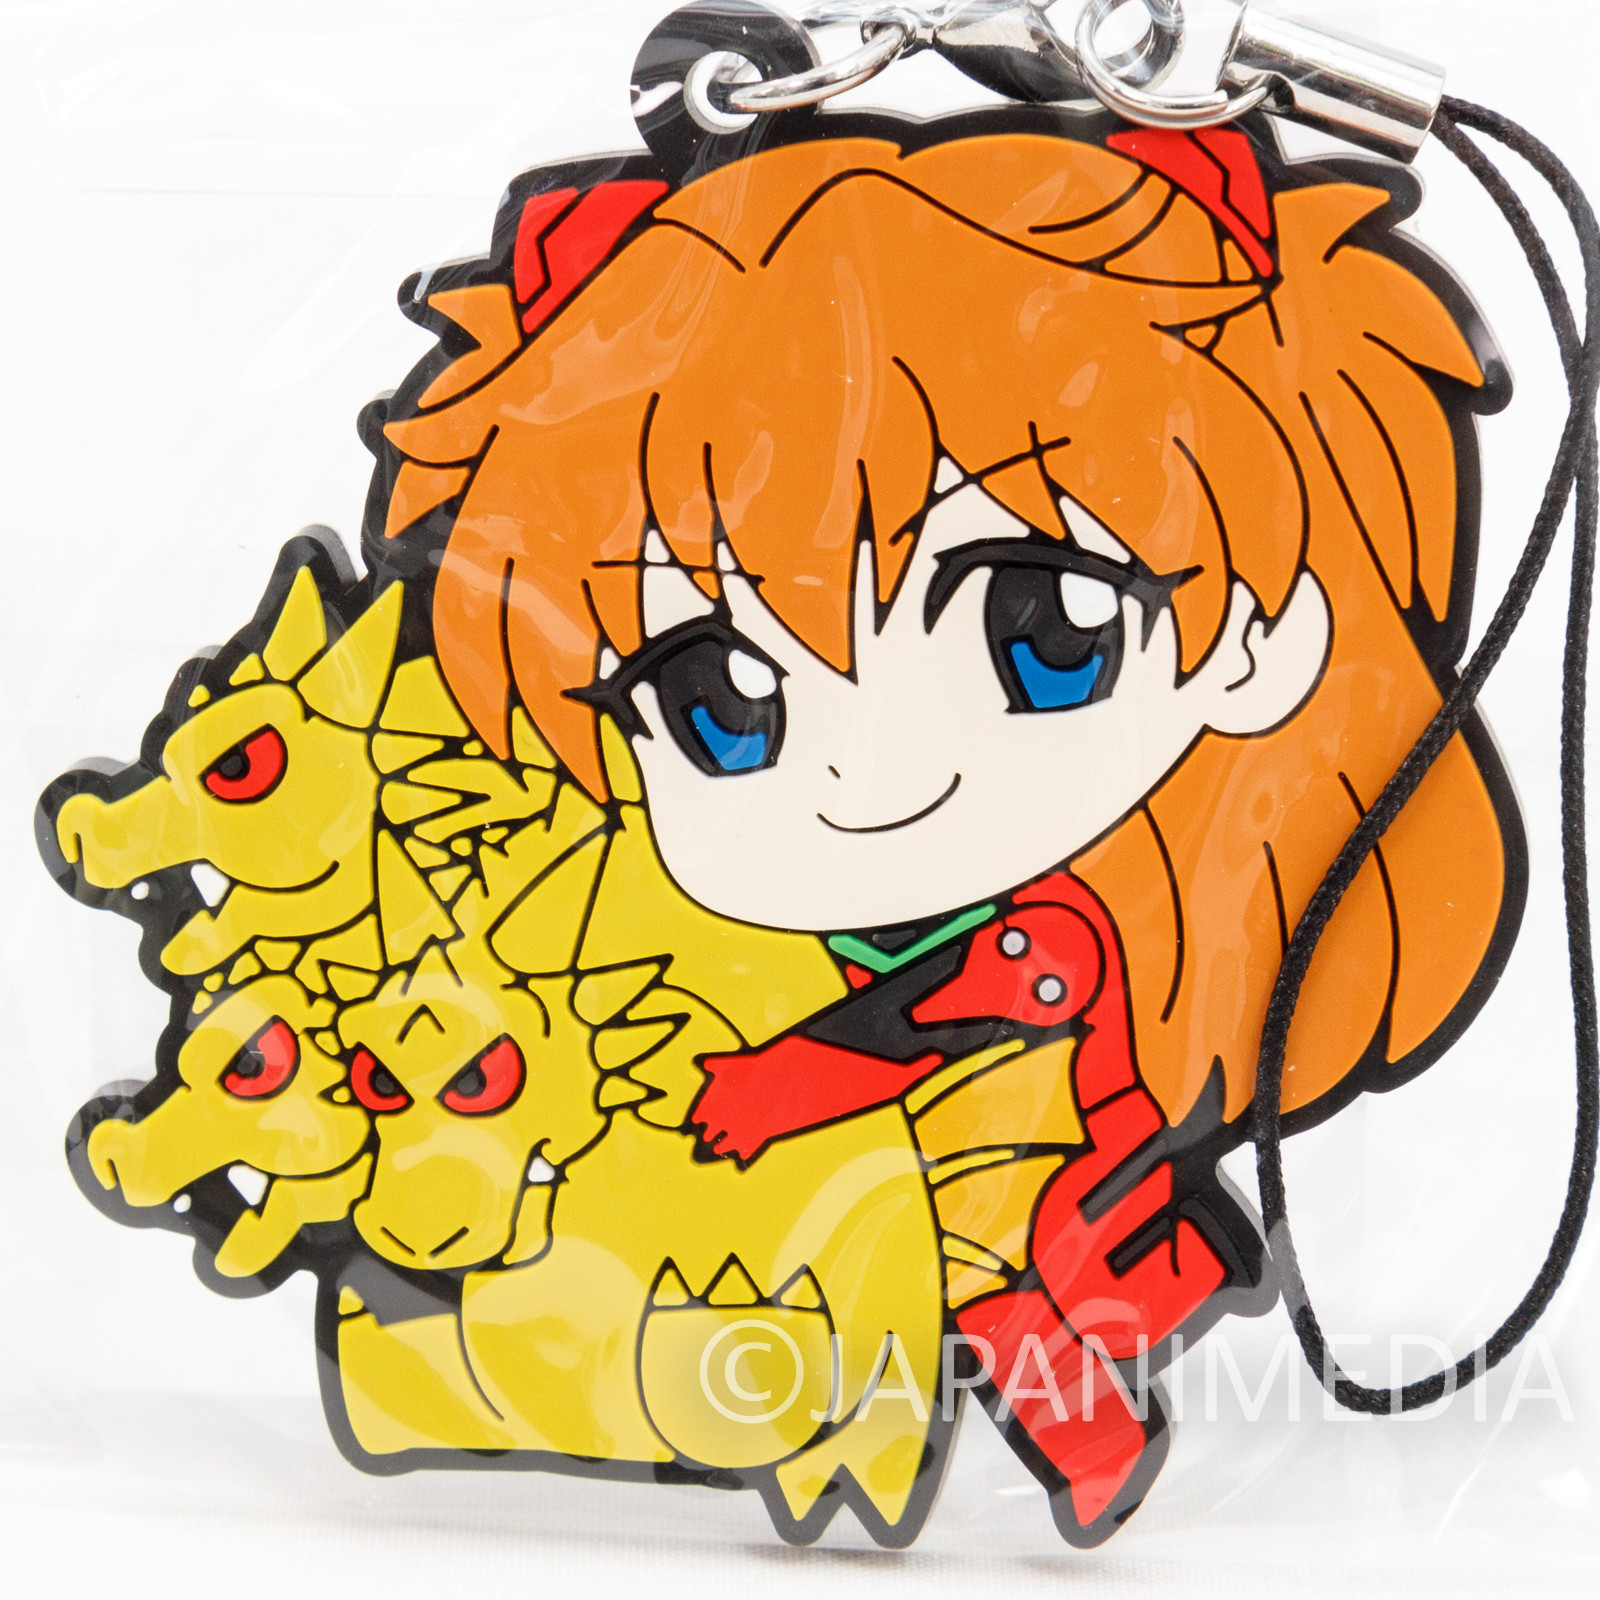 Evangelion Asuka Langley x King Ghidorah Mascot Rubber Strap JAPAN ANIME 2